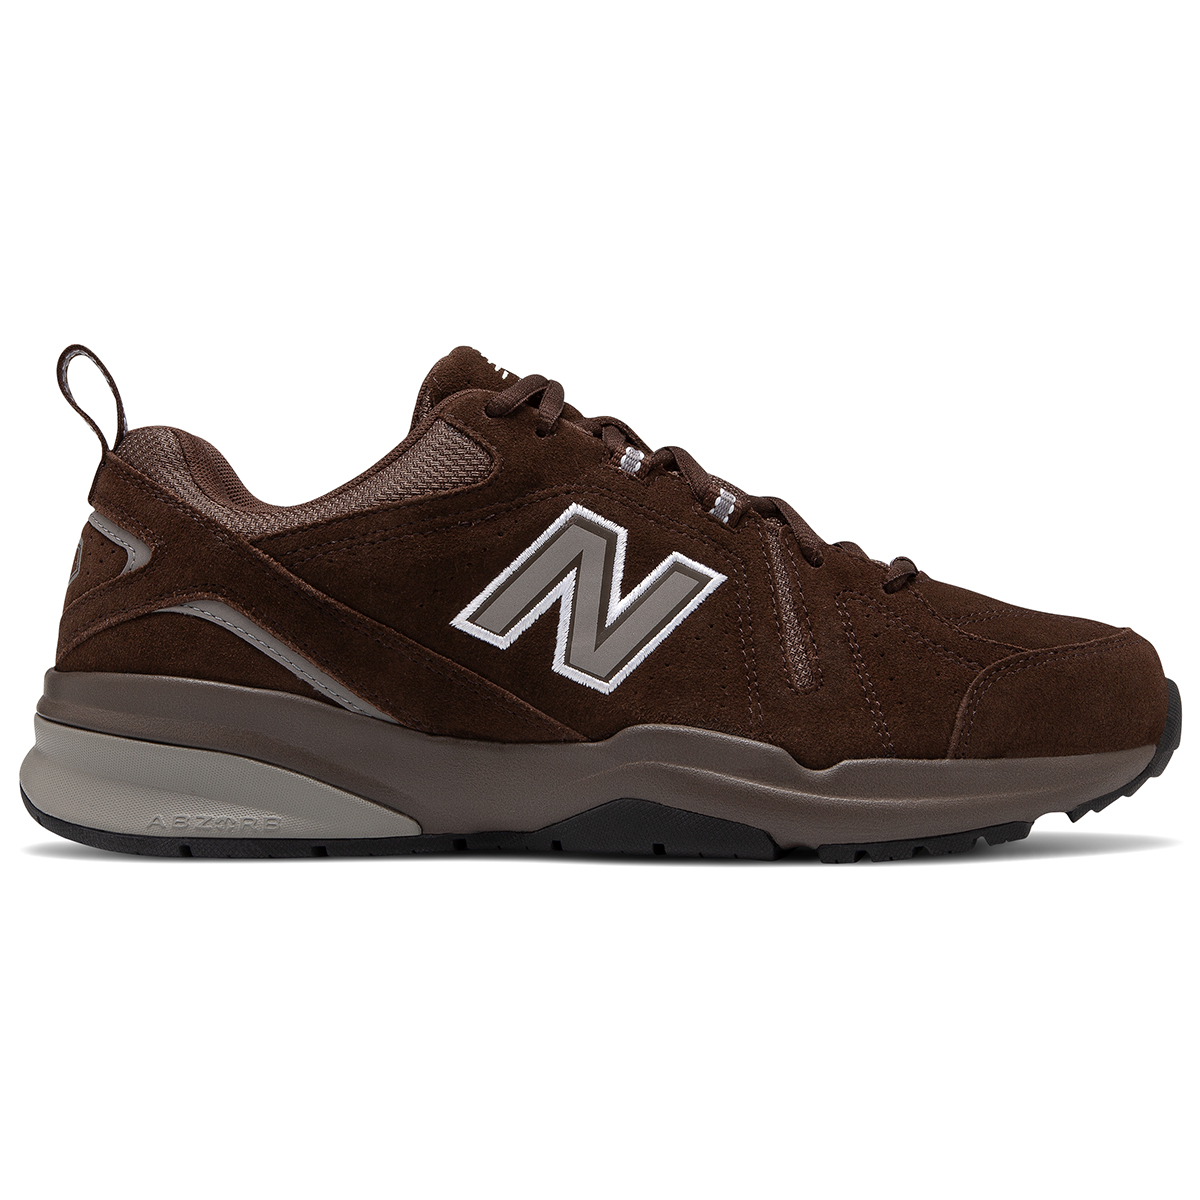 New Balance Men's 608V5 Training Shoes, Wide - Brown, 8